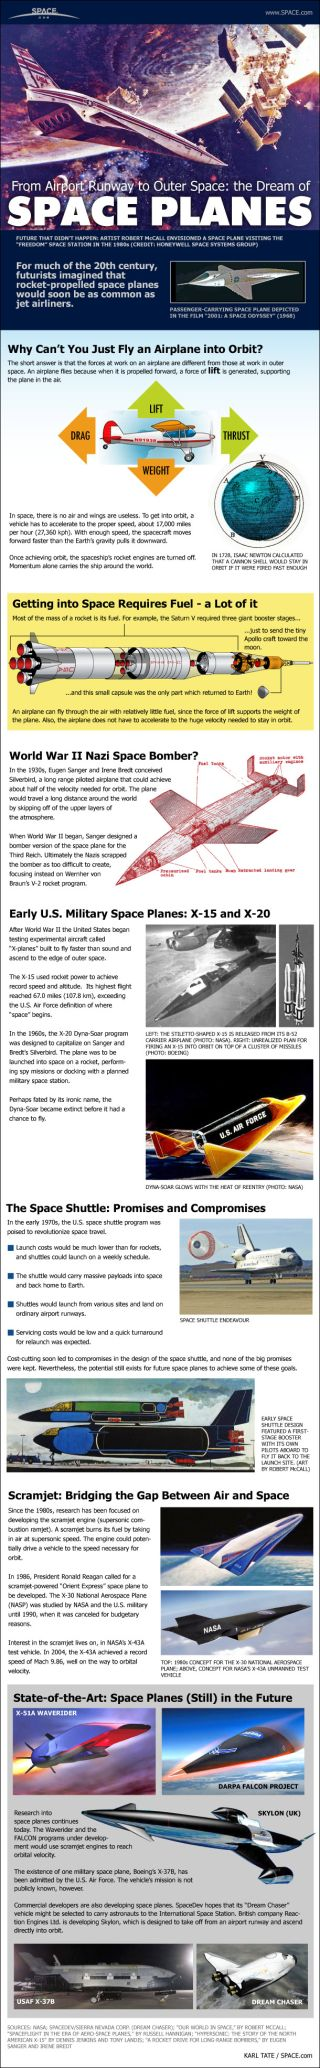 Space Planes infographic